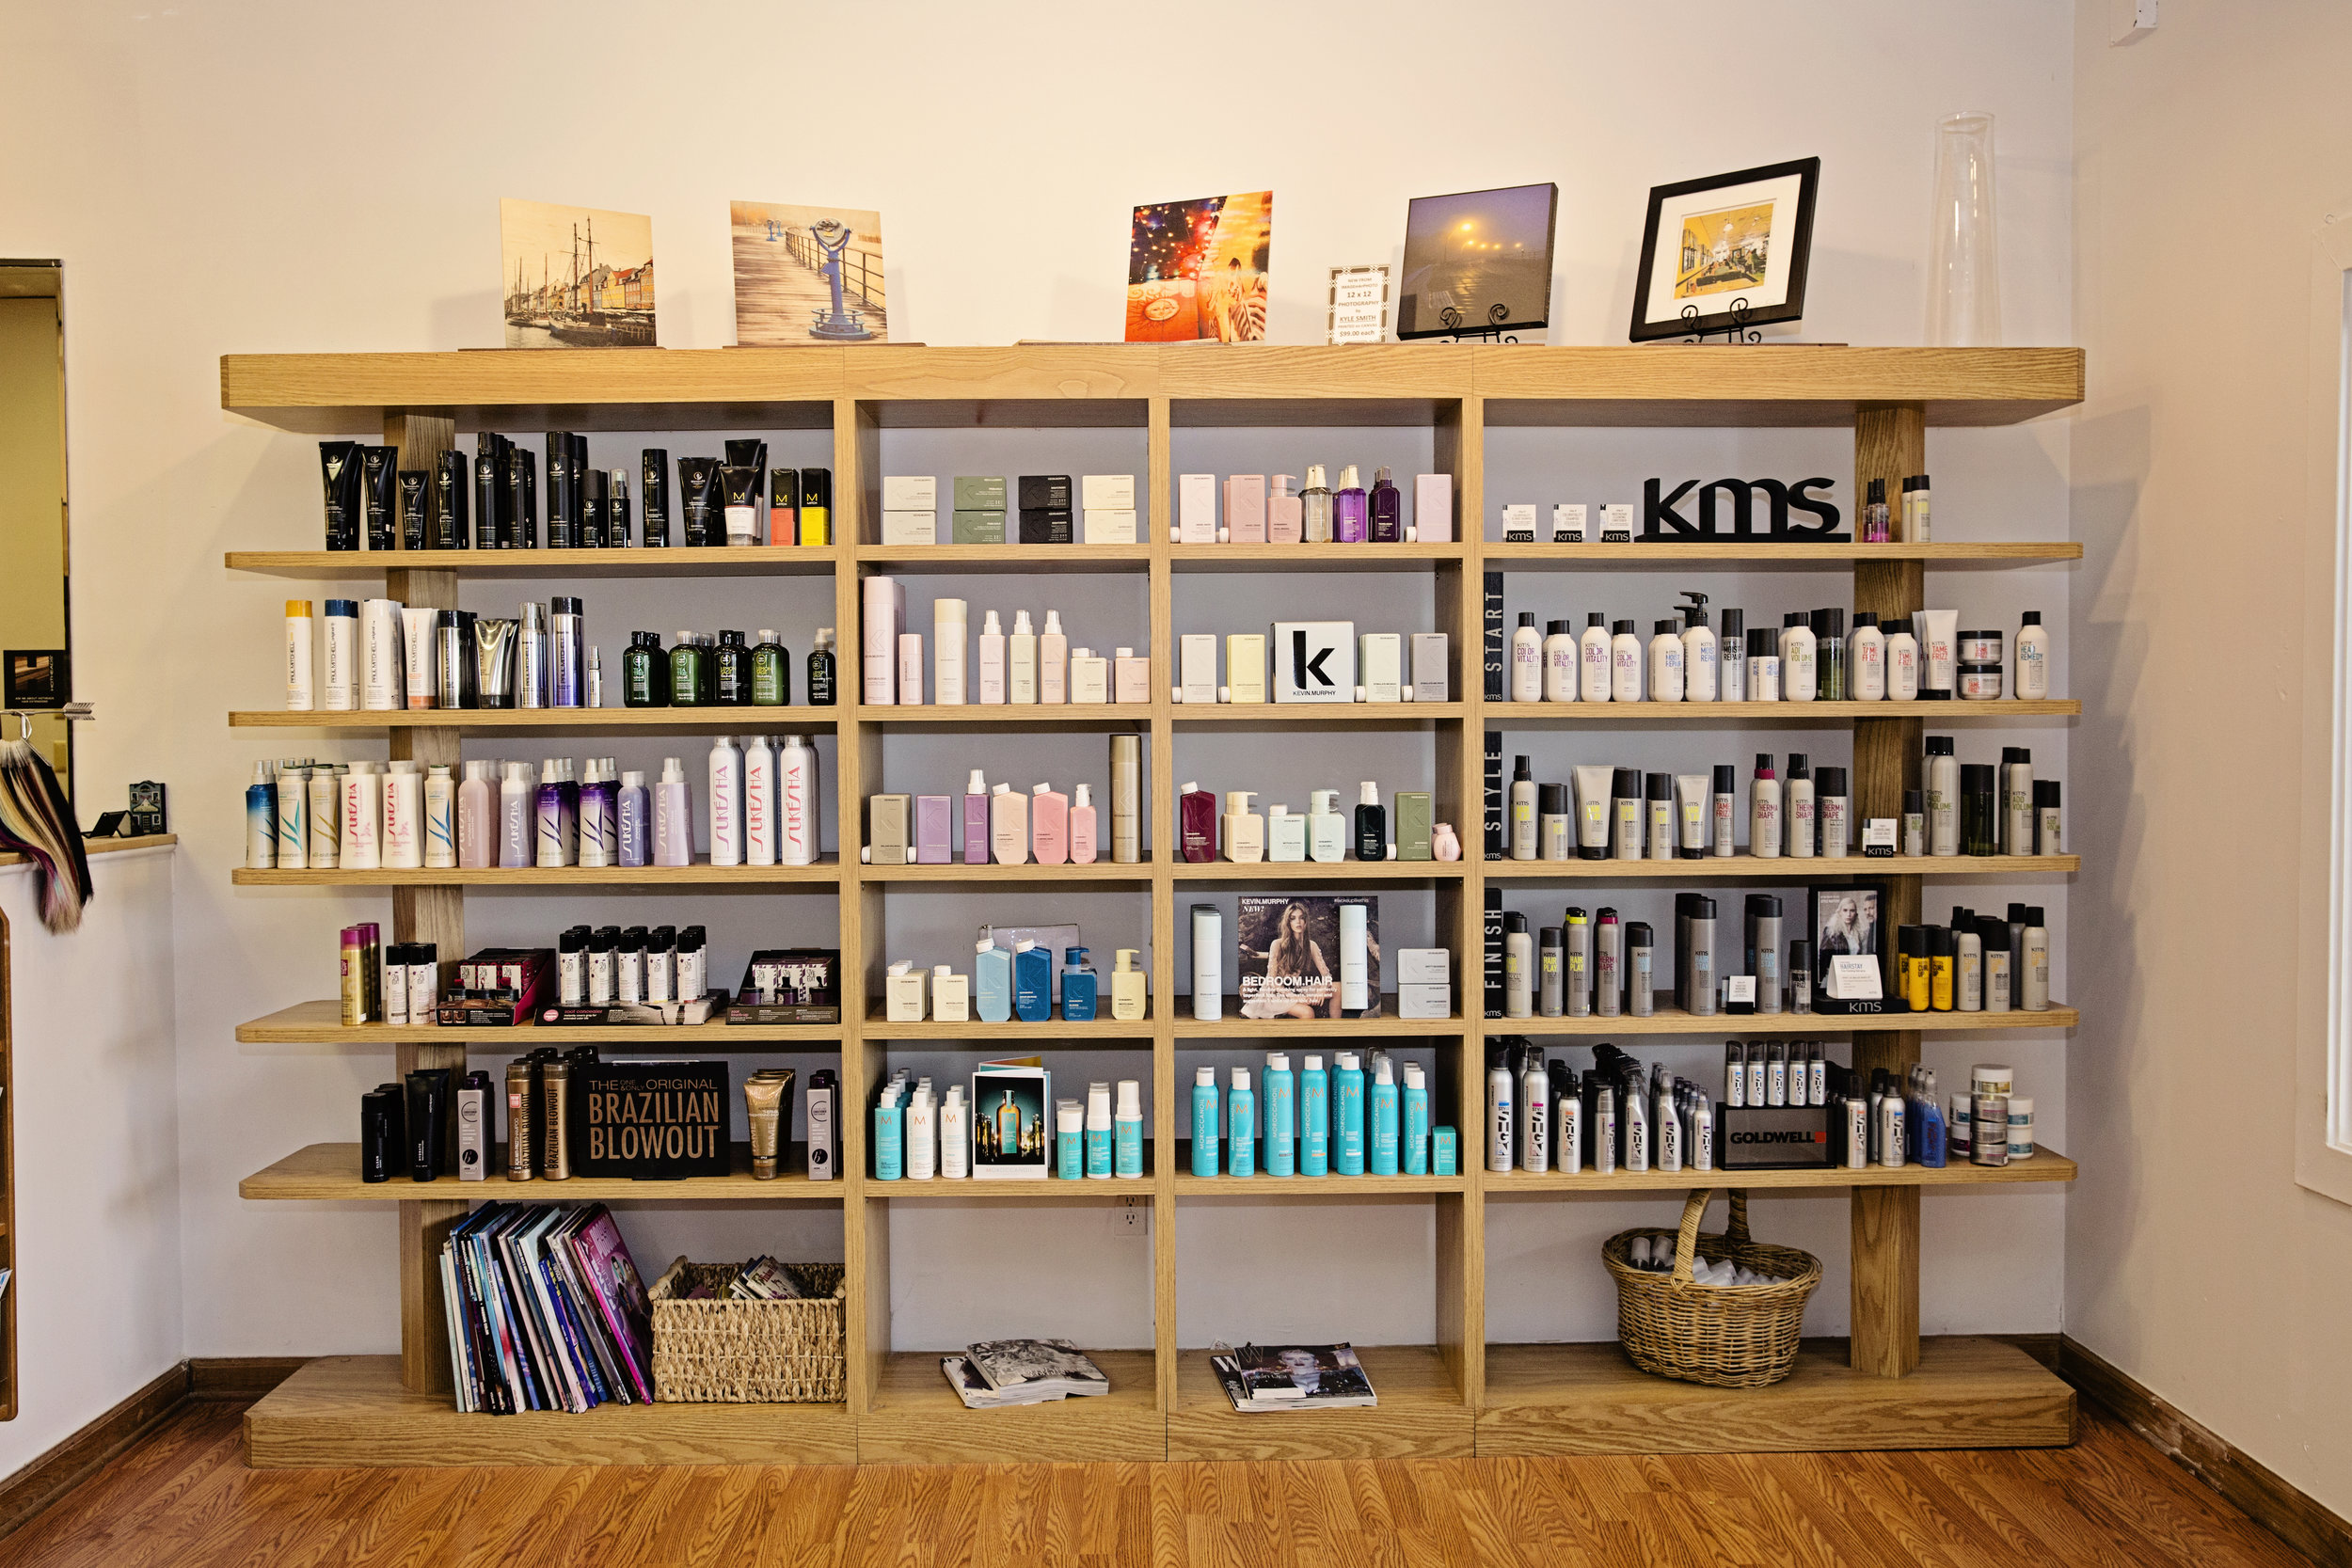 Hair Unique: Best hair products in Mystic, CT